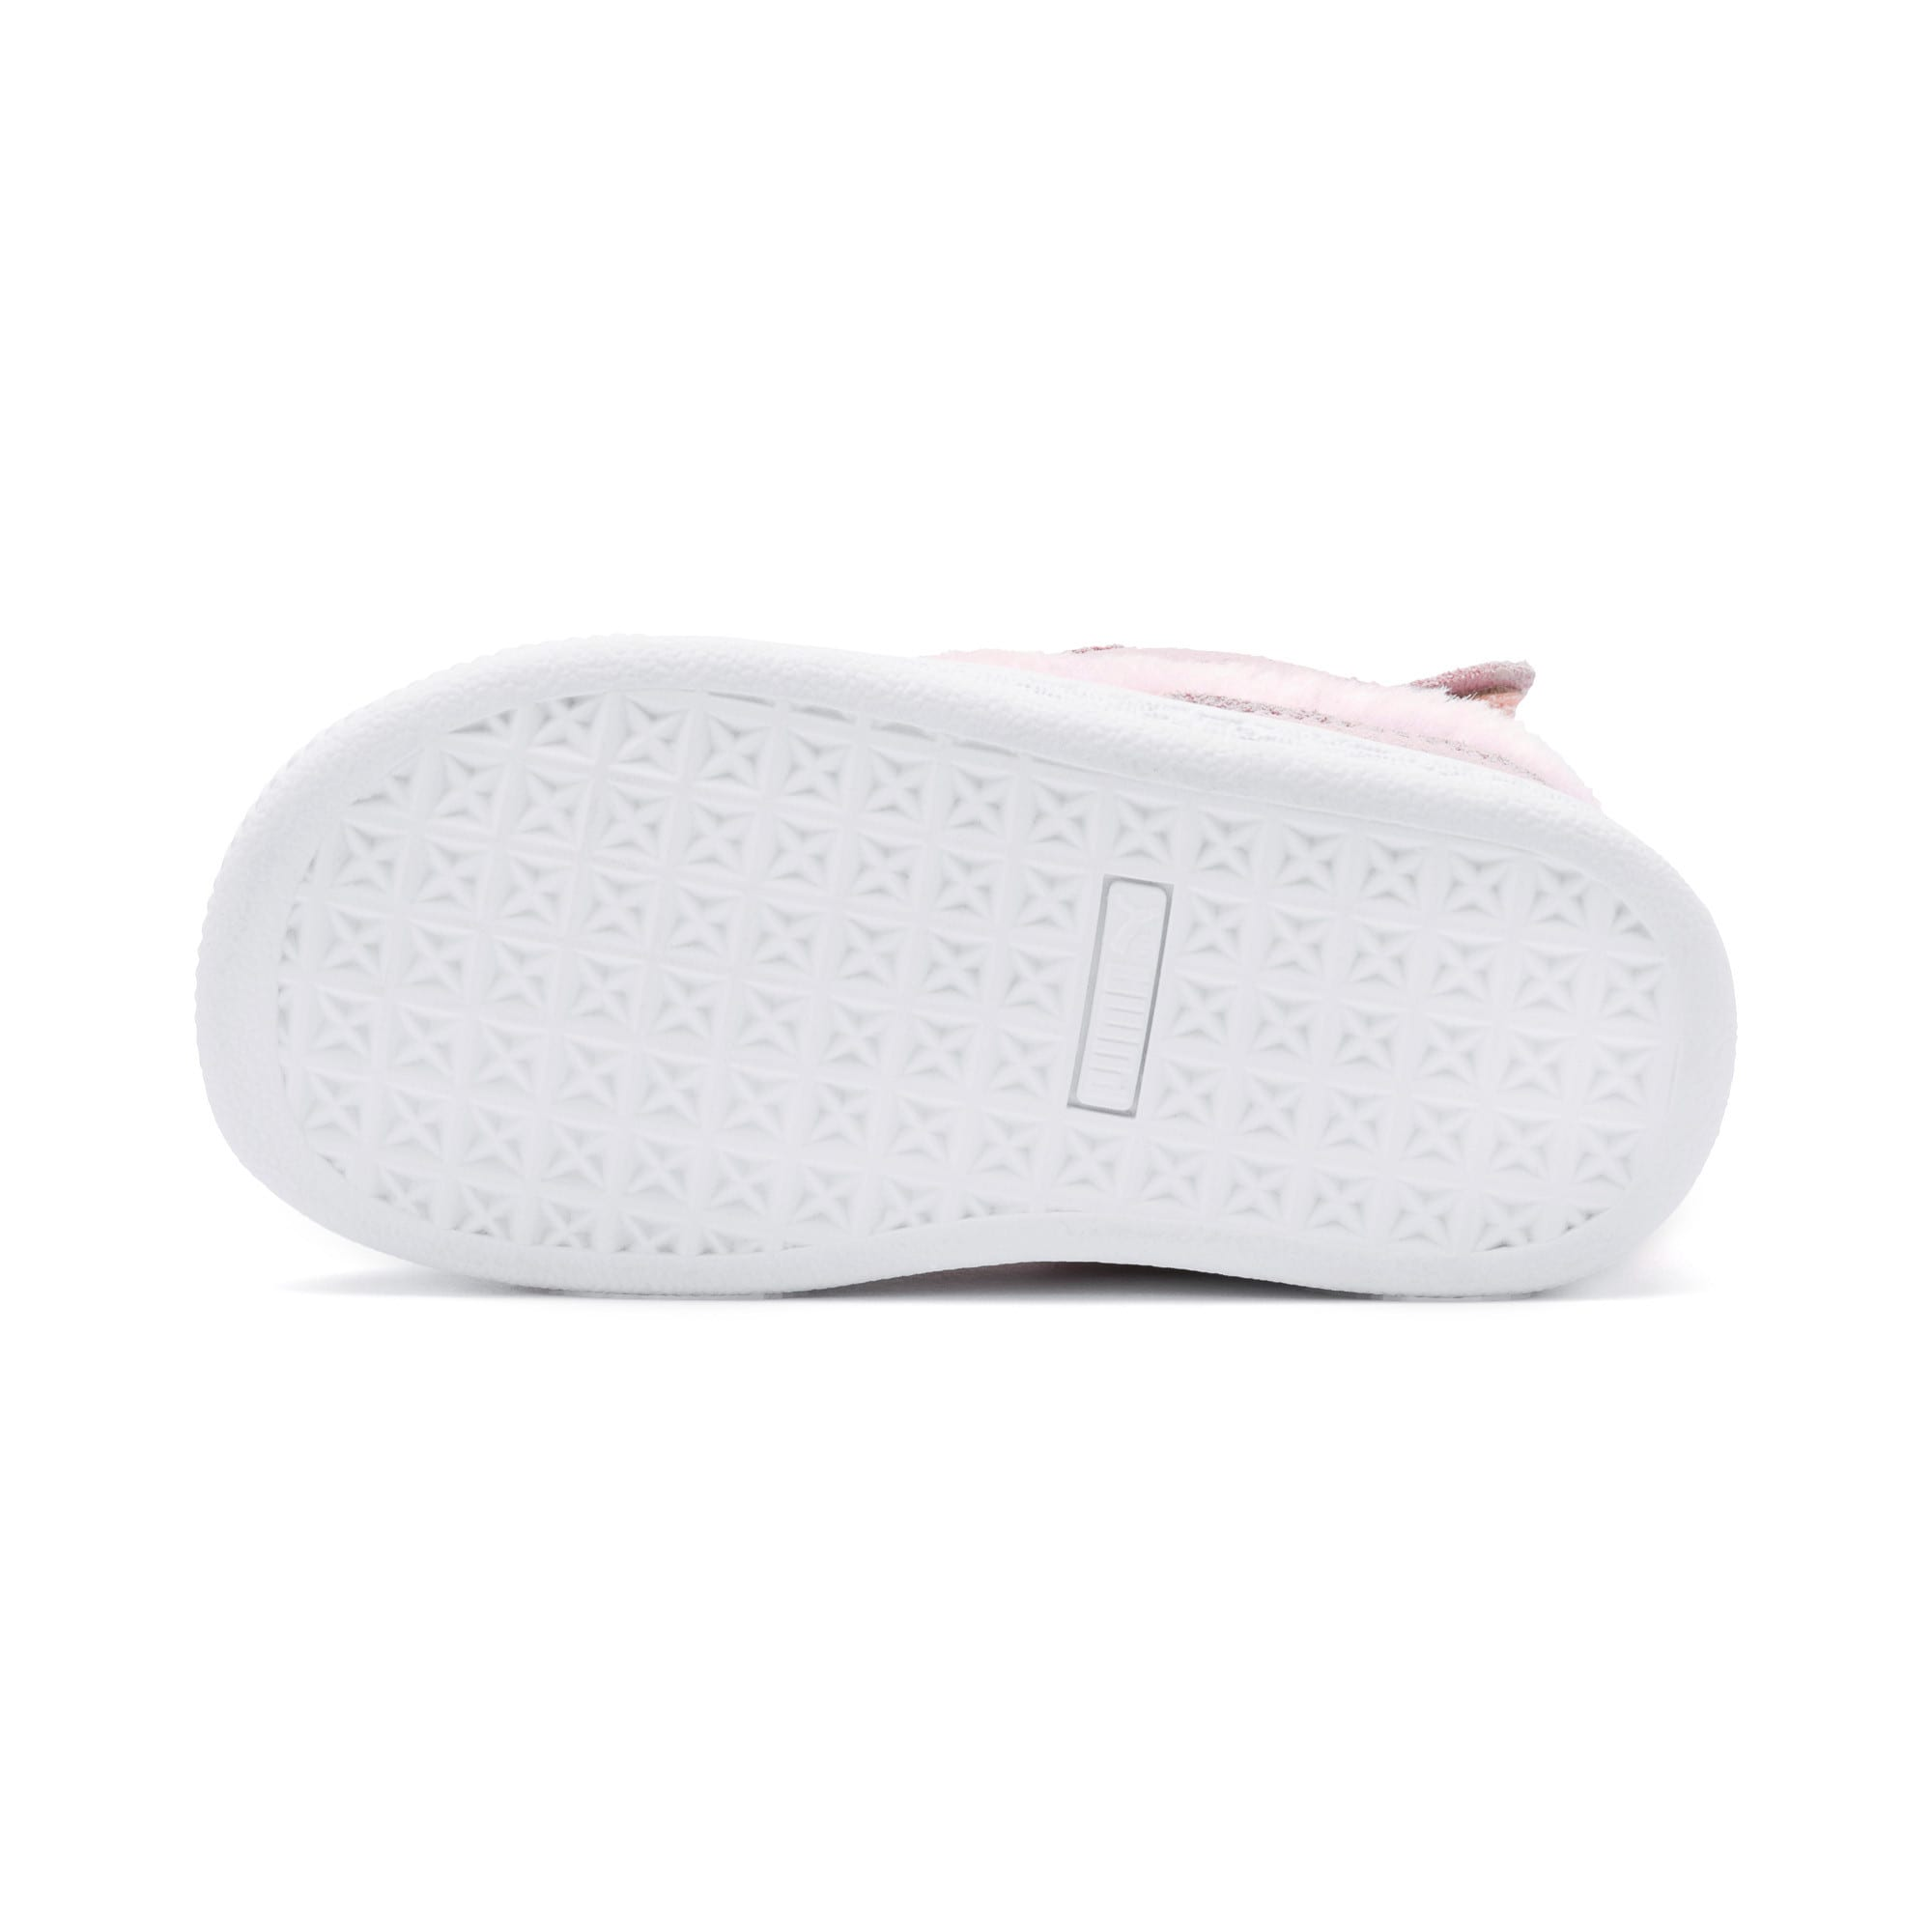 Thumbnail 4 of Suede Easter Alternate Closure Baby Sneaker, Pale Pink-Coral Cloud, medium